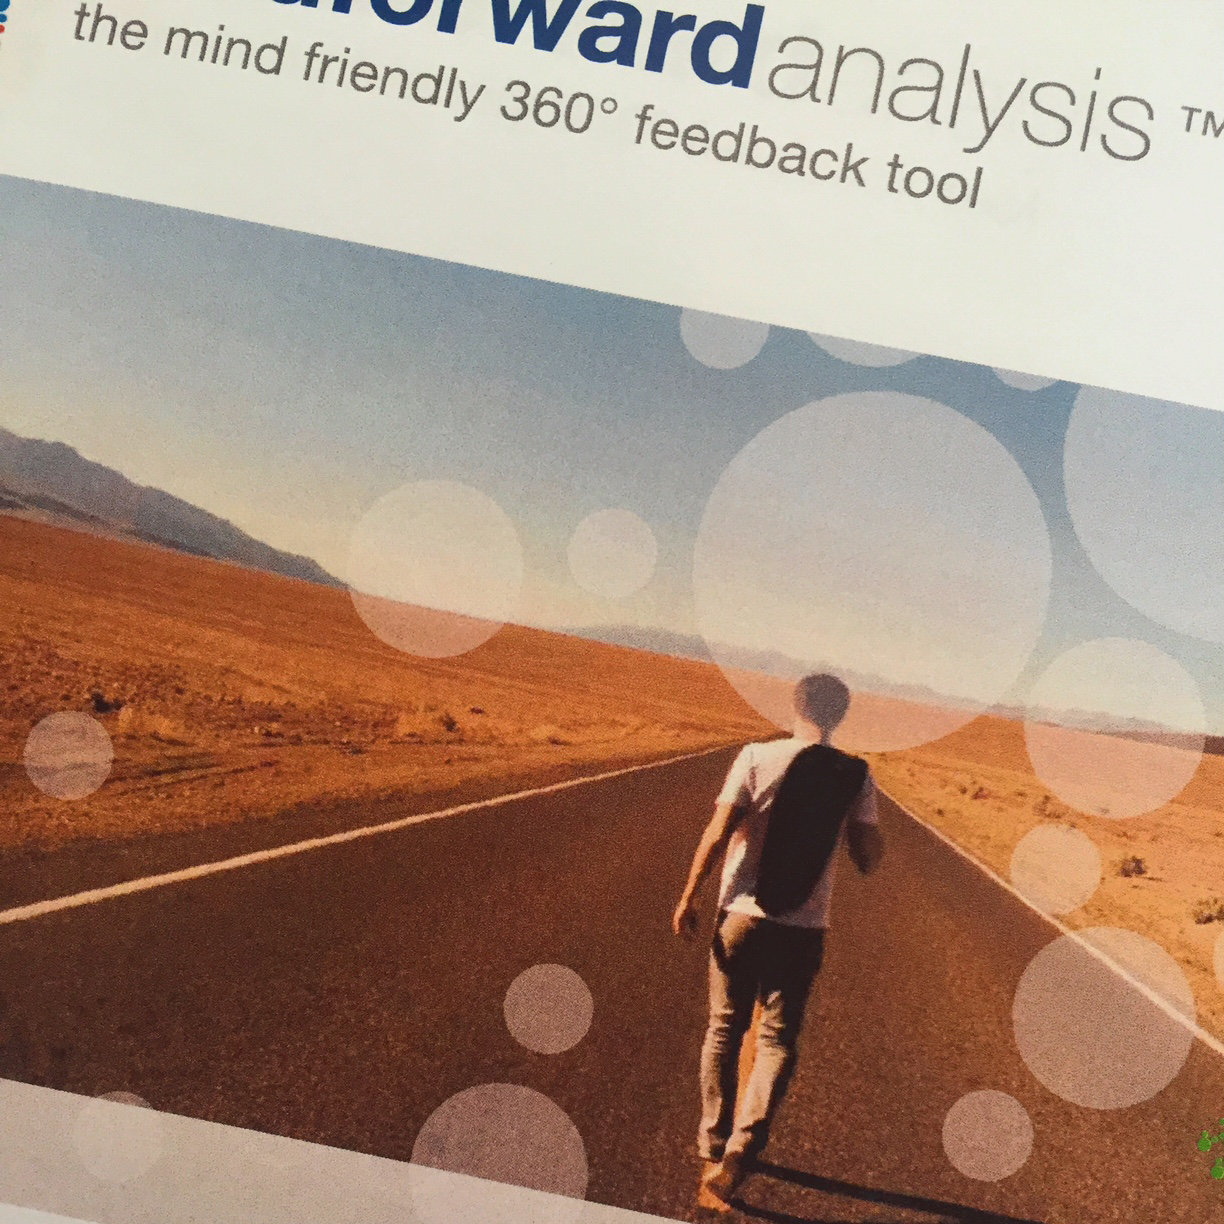 download-the-feedforward-analysis-brochure